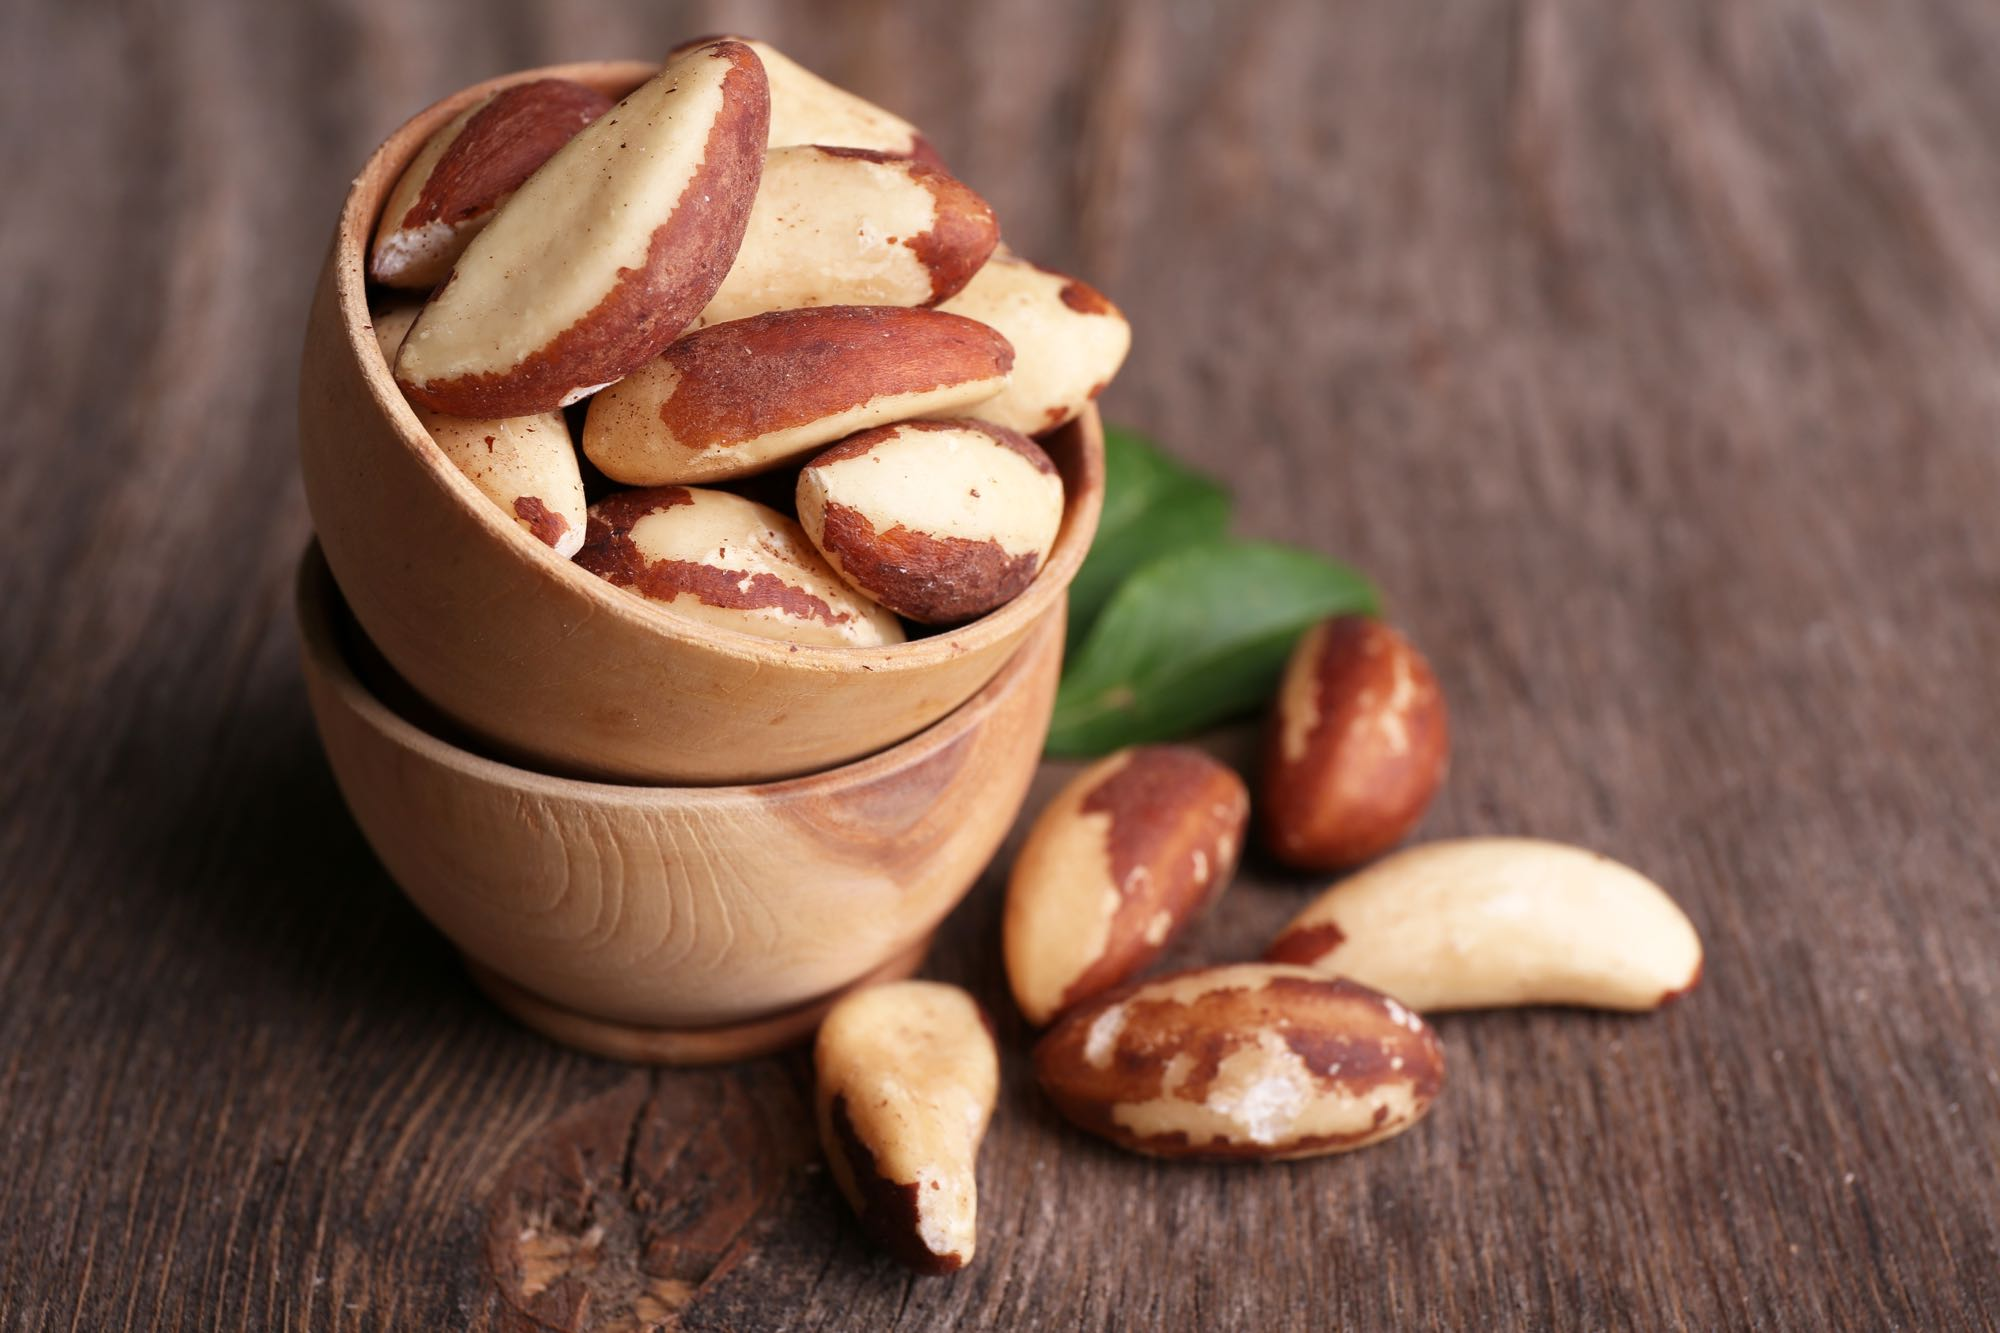 Small bowl of Brazil nuts